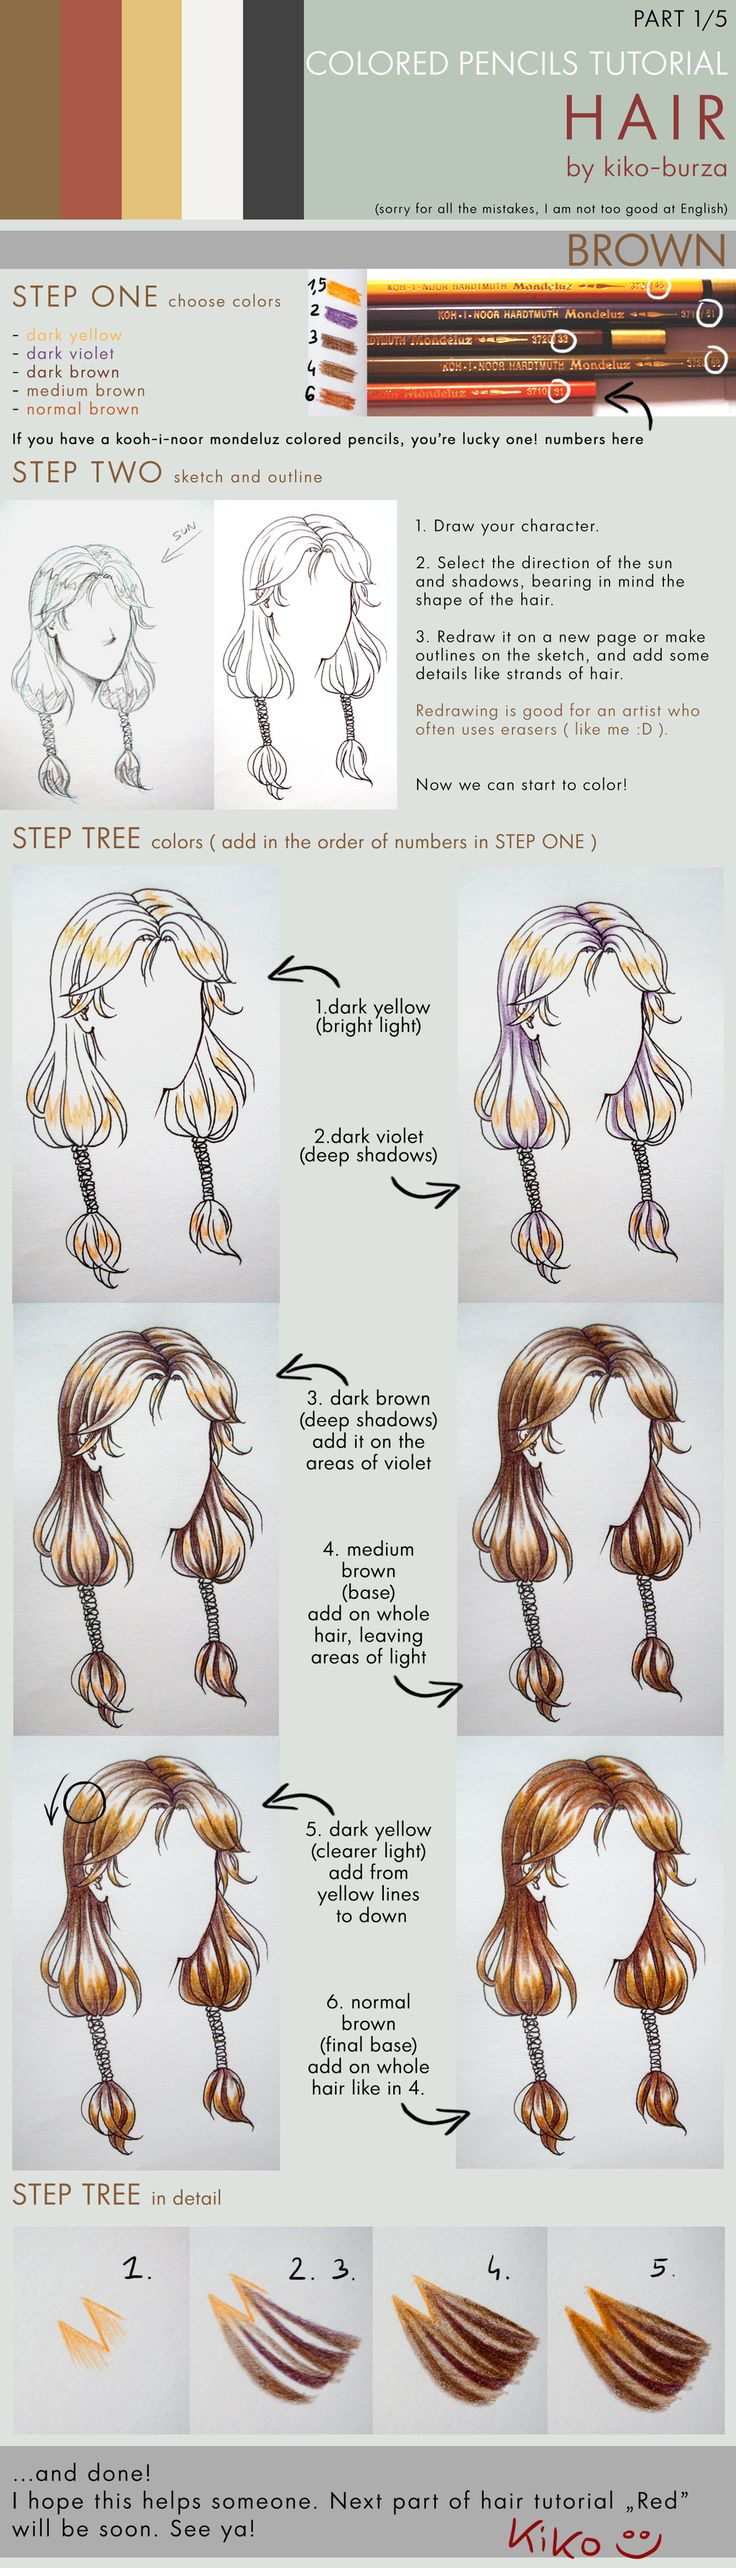 Colored pencils tutorial HAIR part 1 by kiko-burza.deviantart.com on @deviantART